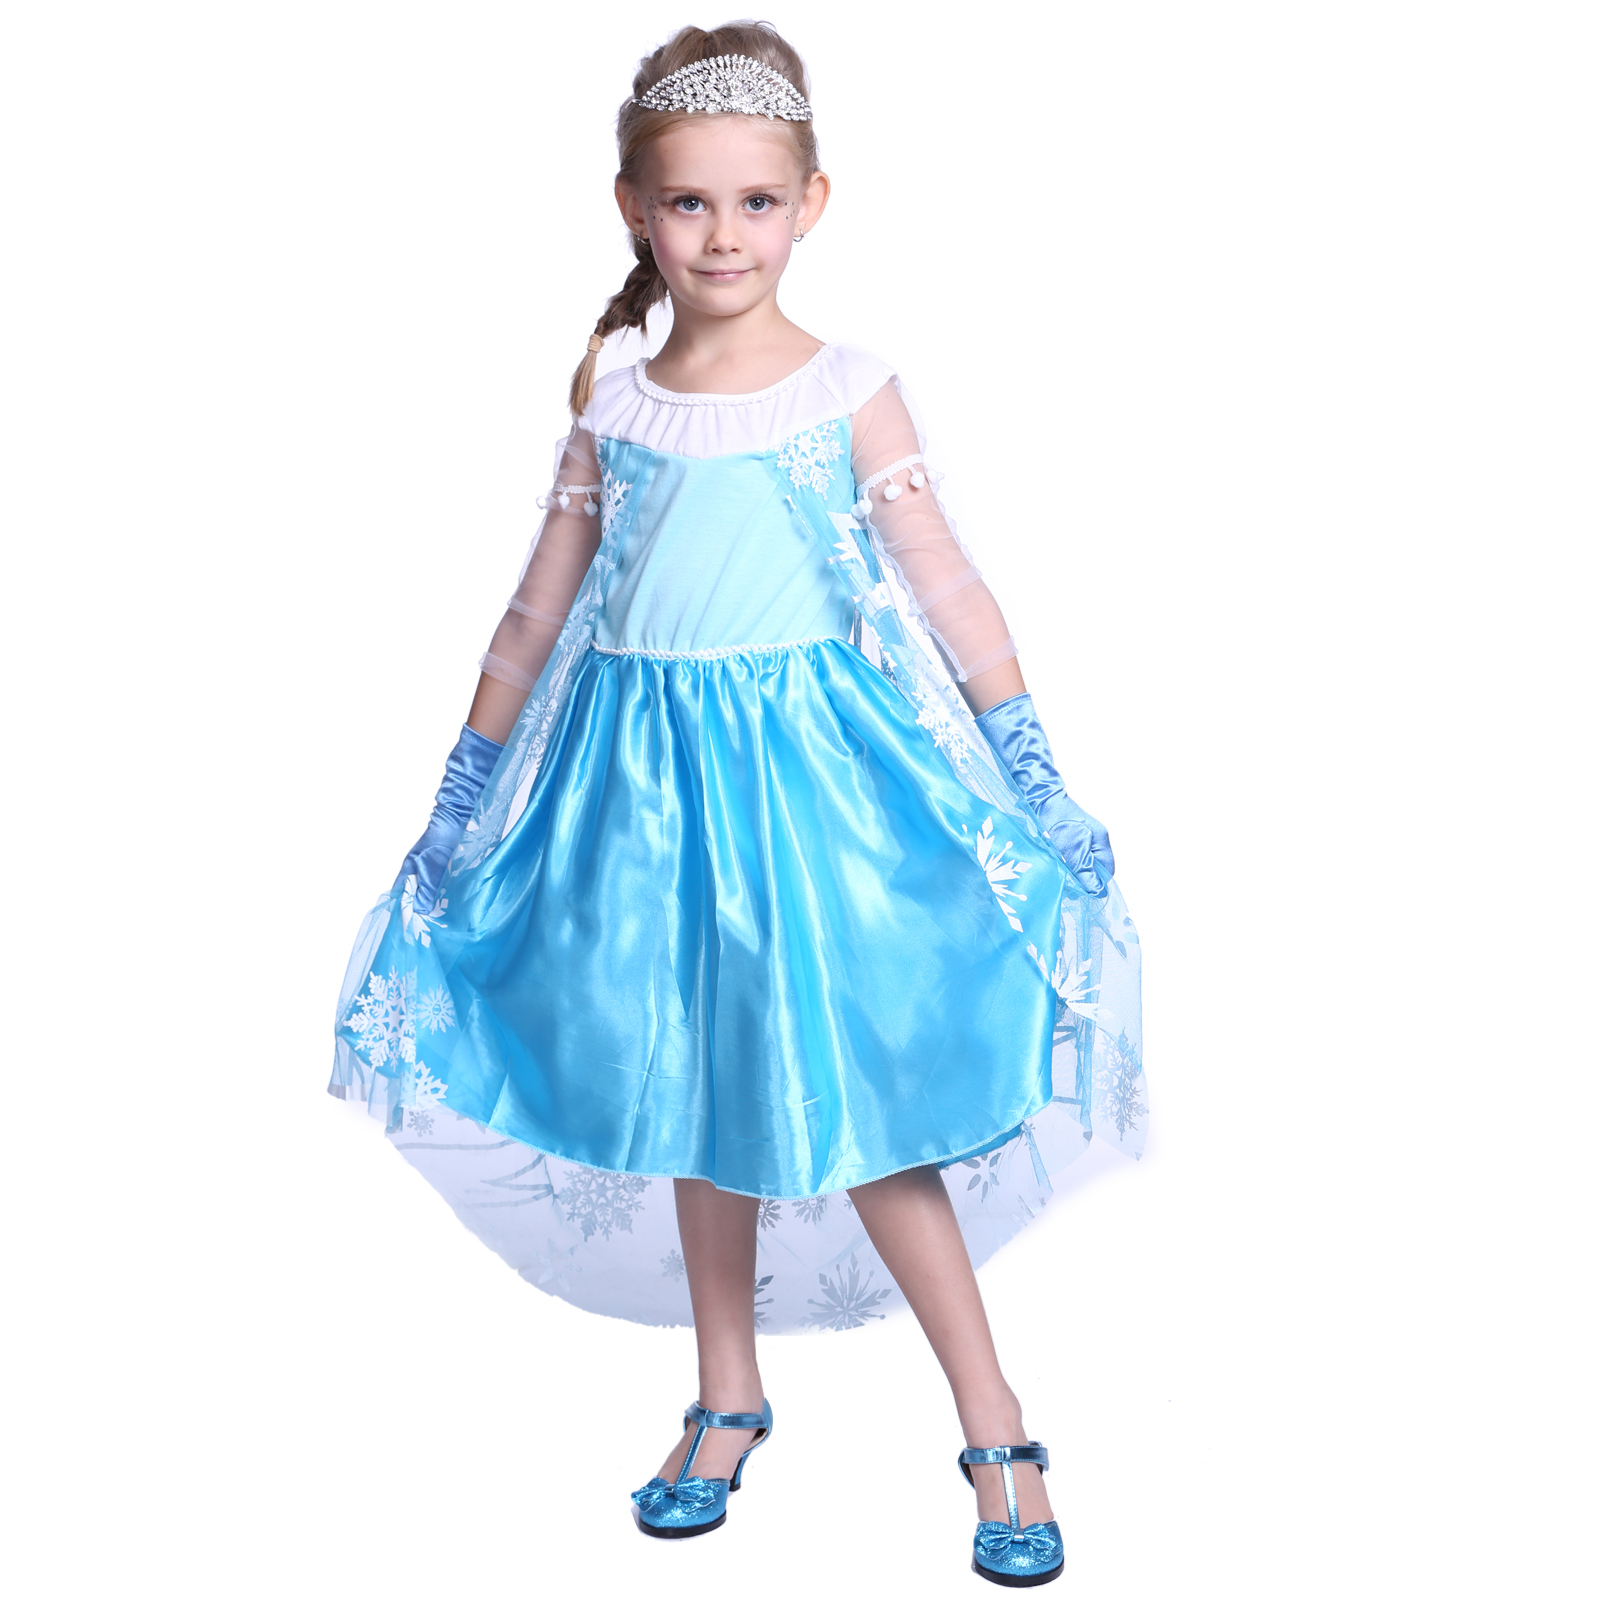 Kids Cosplay Costume Dress Cinderella Elsa Baby Girls: Toddler Baby Kids Girls Dresses Elsa Frozen Princess Anna